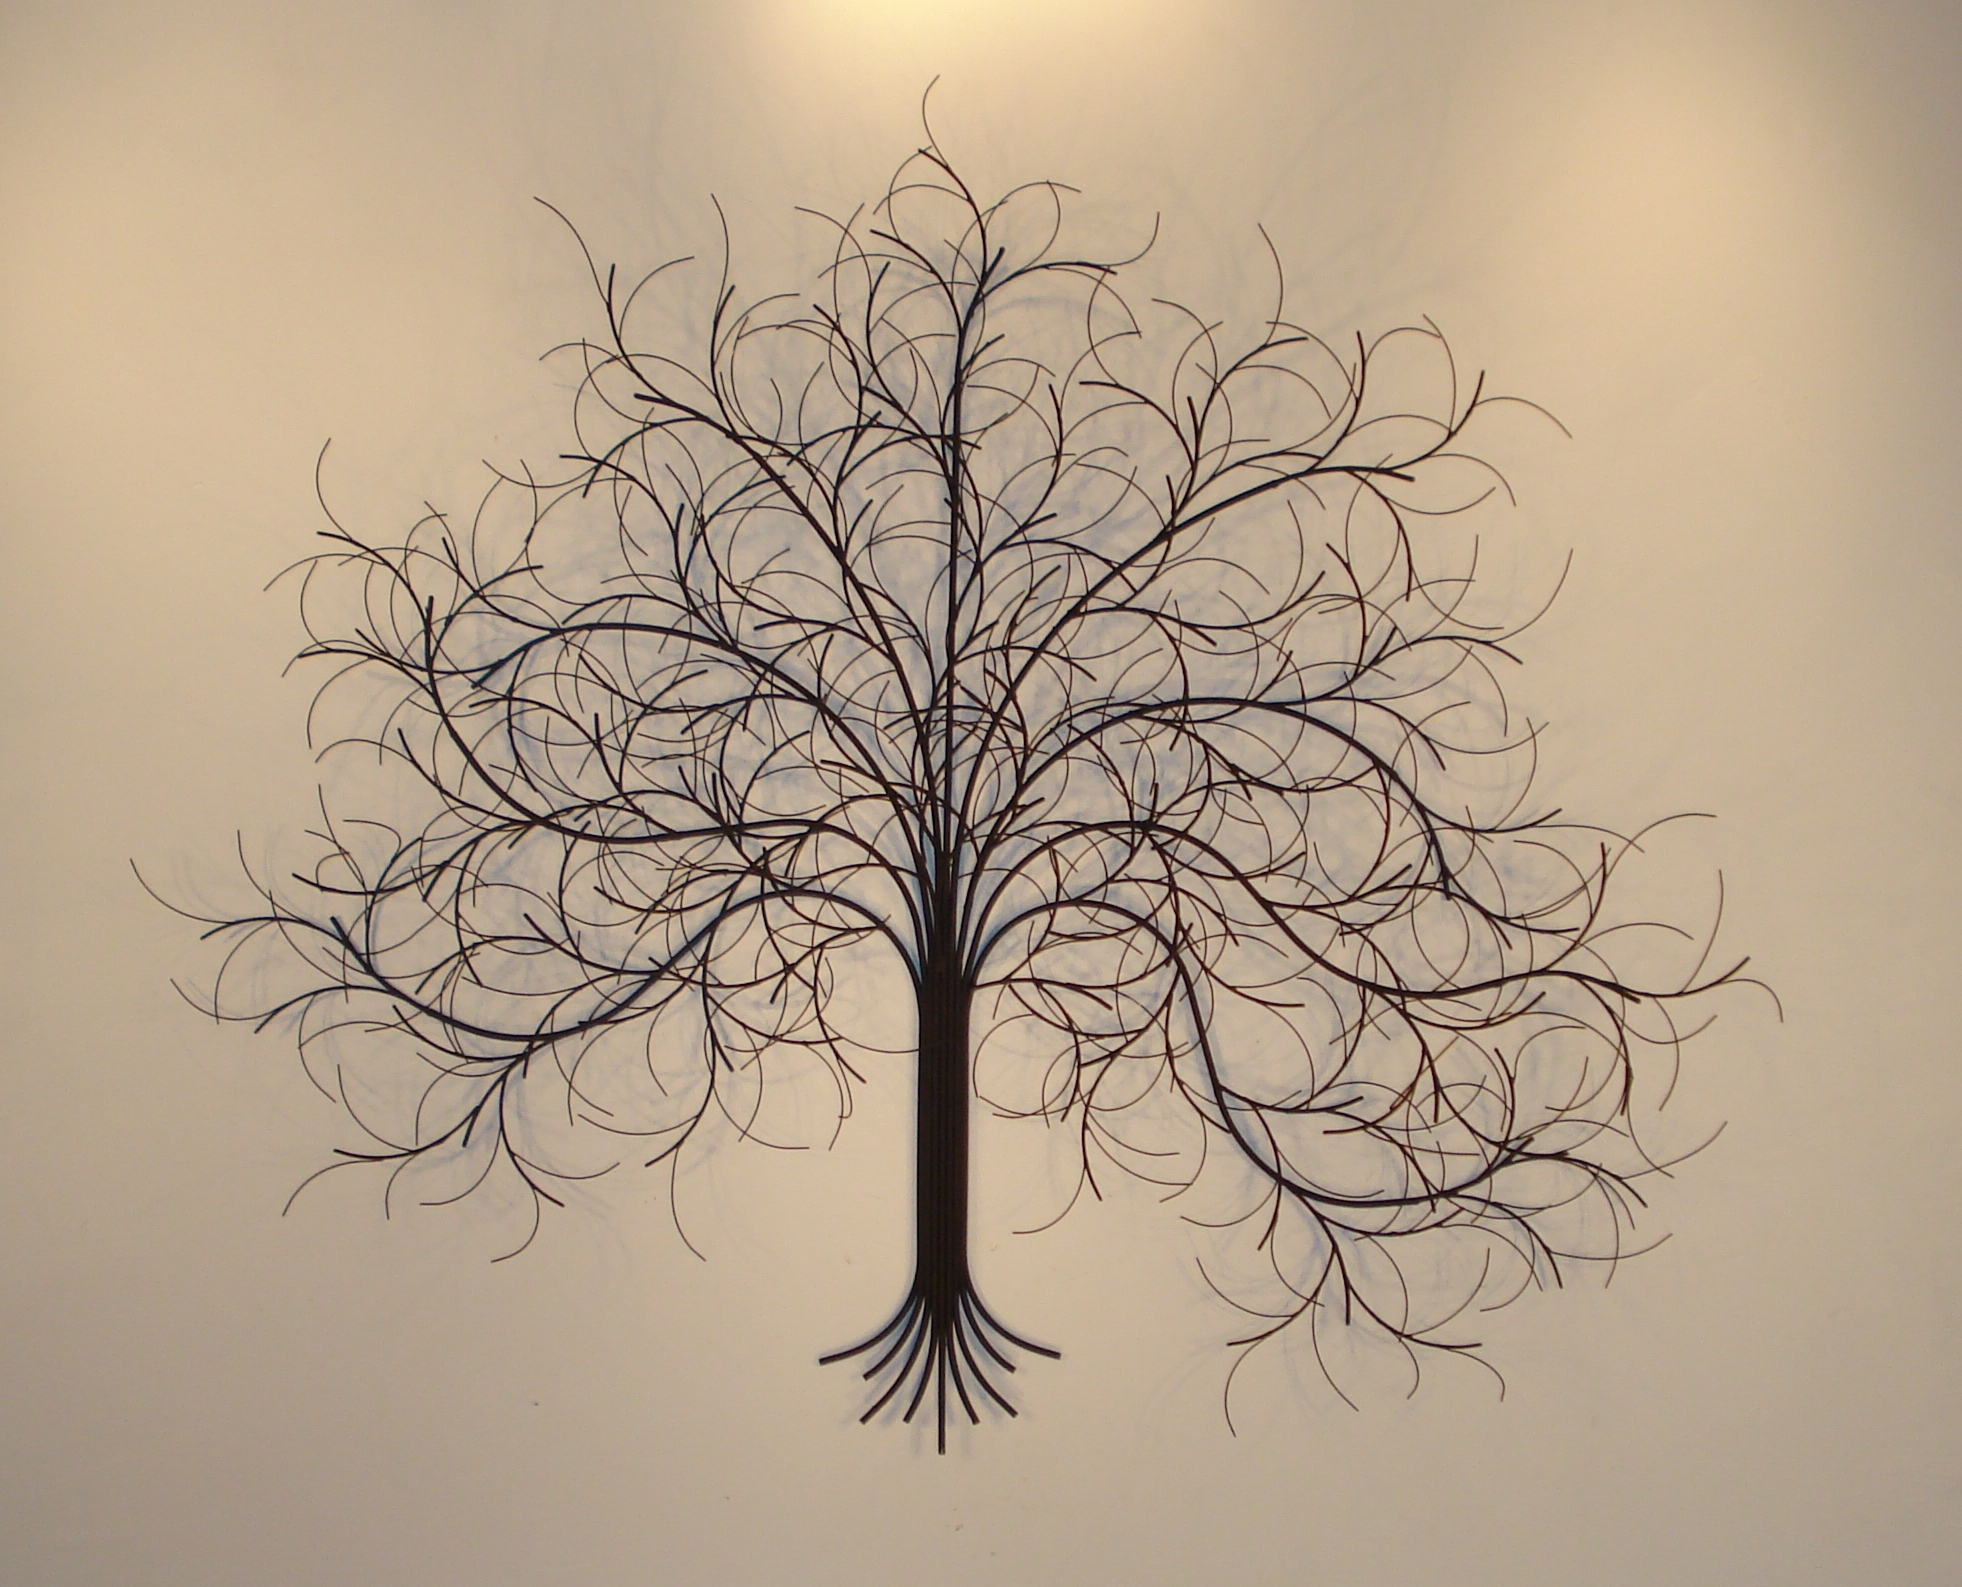 Marvelous March Tree Black Metal Wall Art Decor Indoor Single